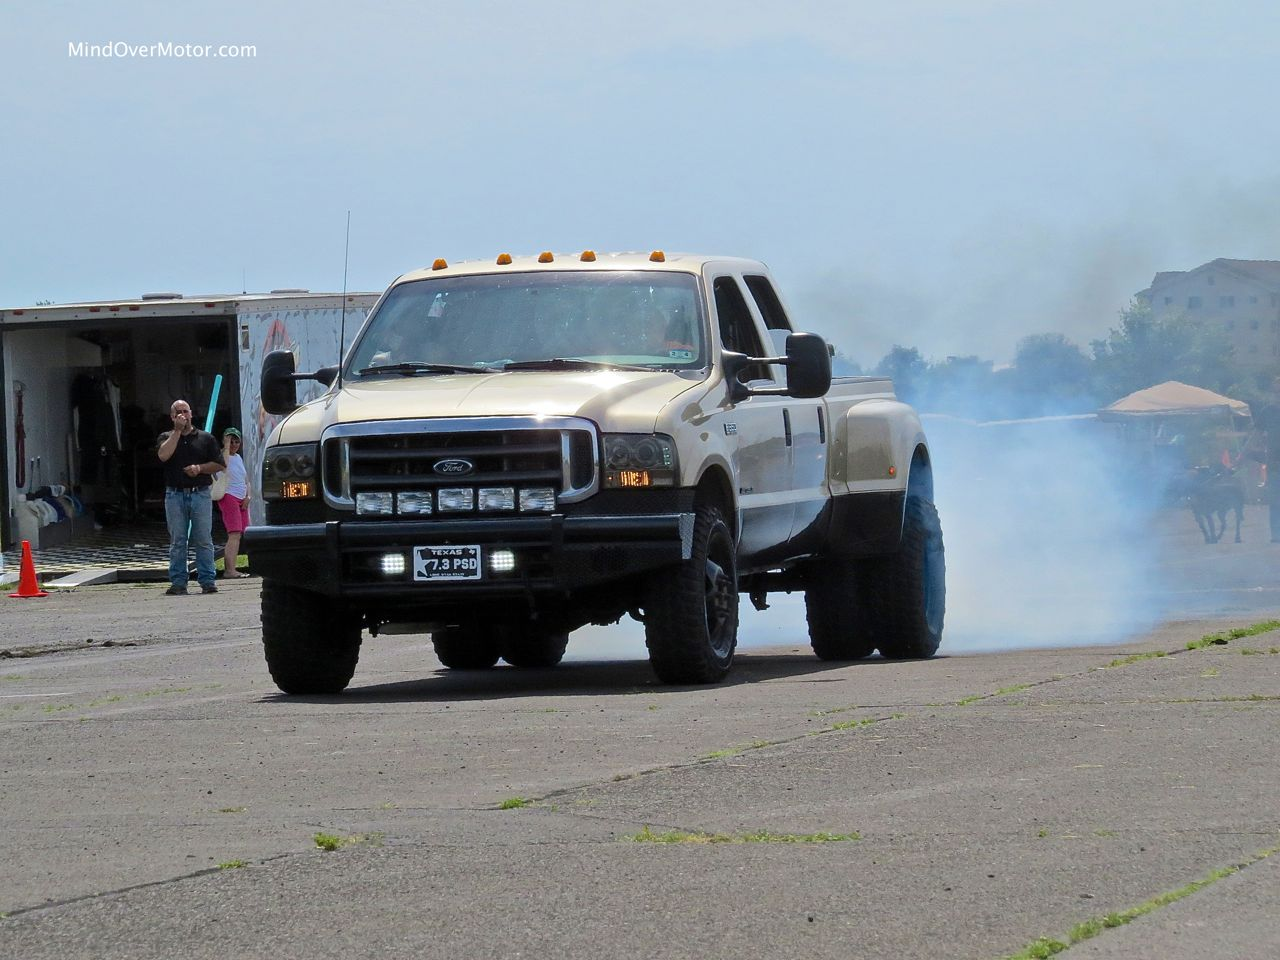 Ford F-350 Super Duty Burnout